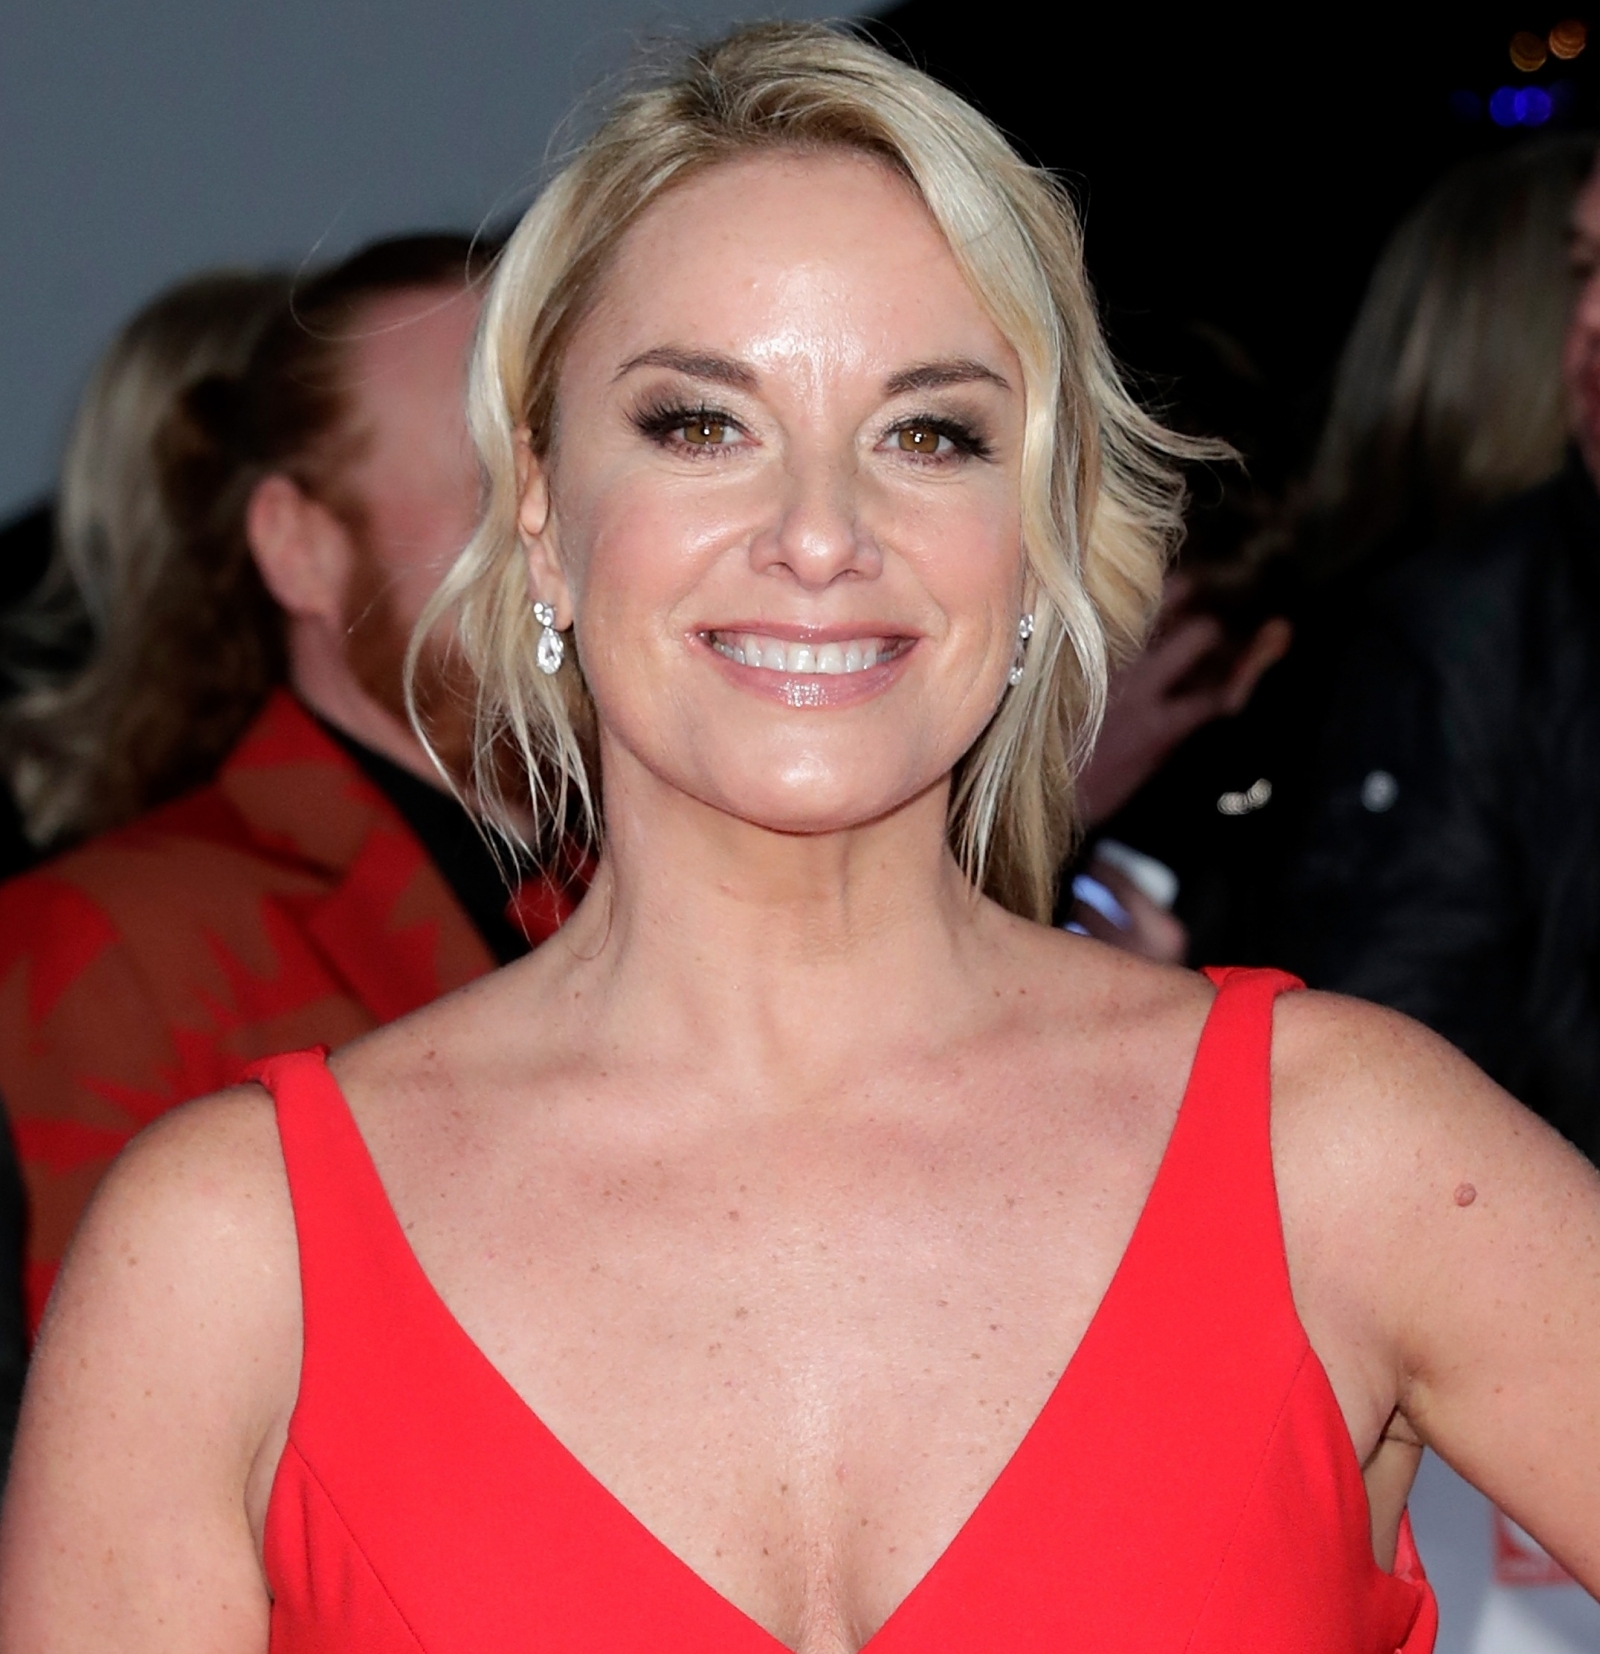 EastEnders actress Tamzin Outhwaites nude photos leaked